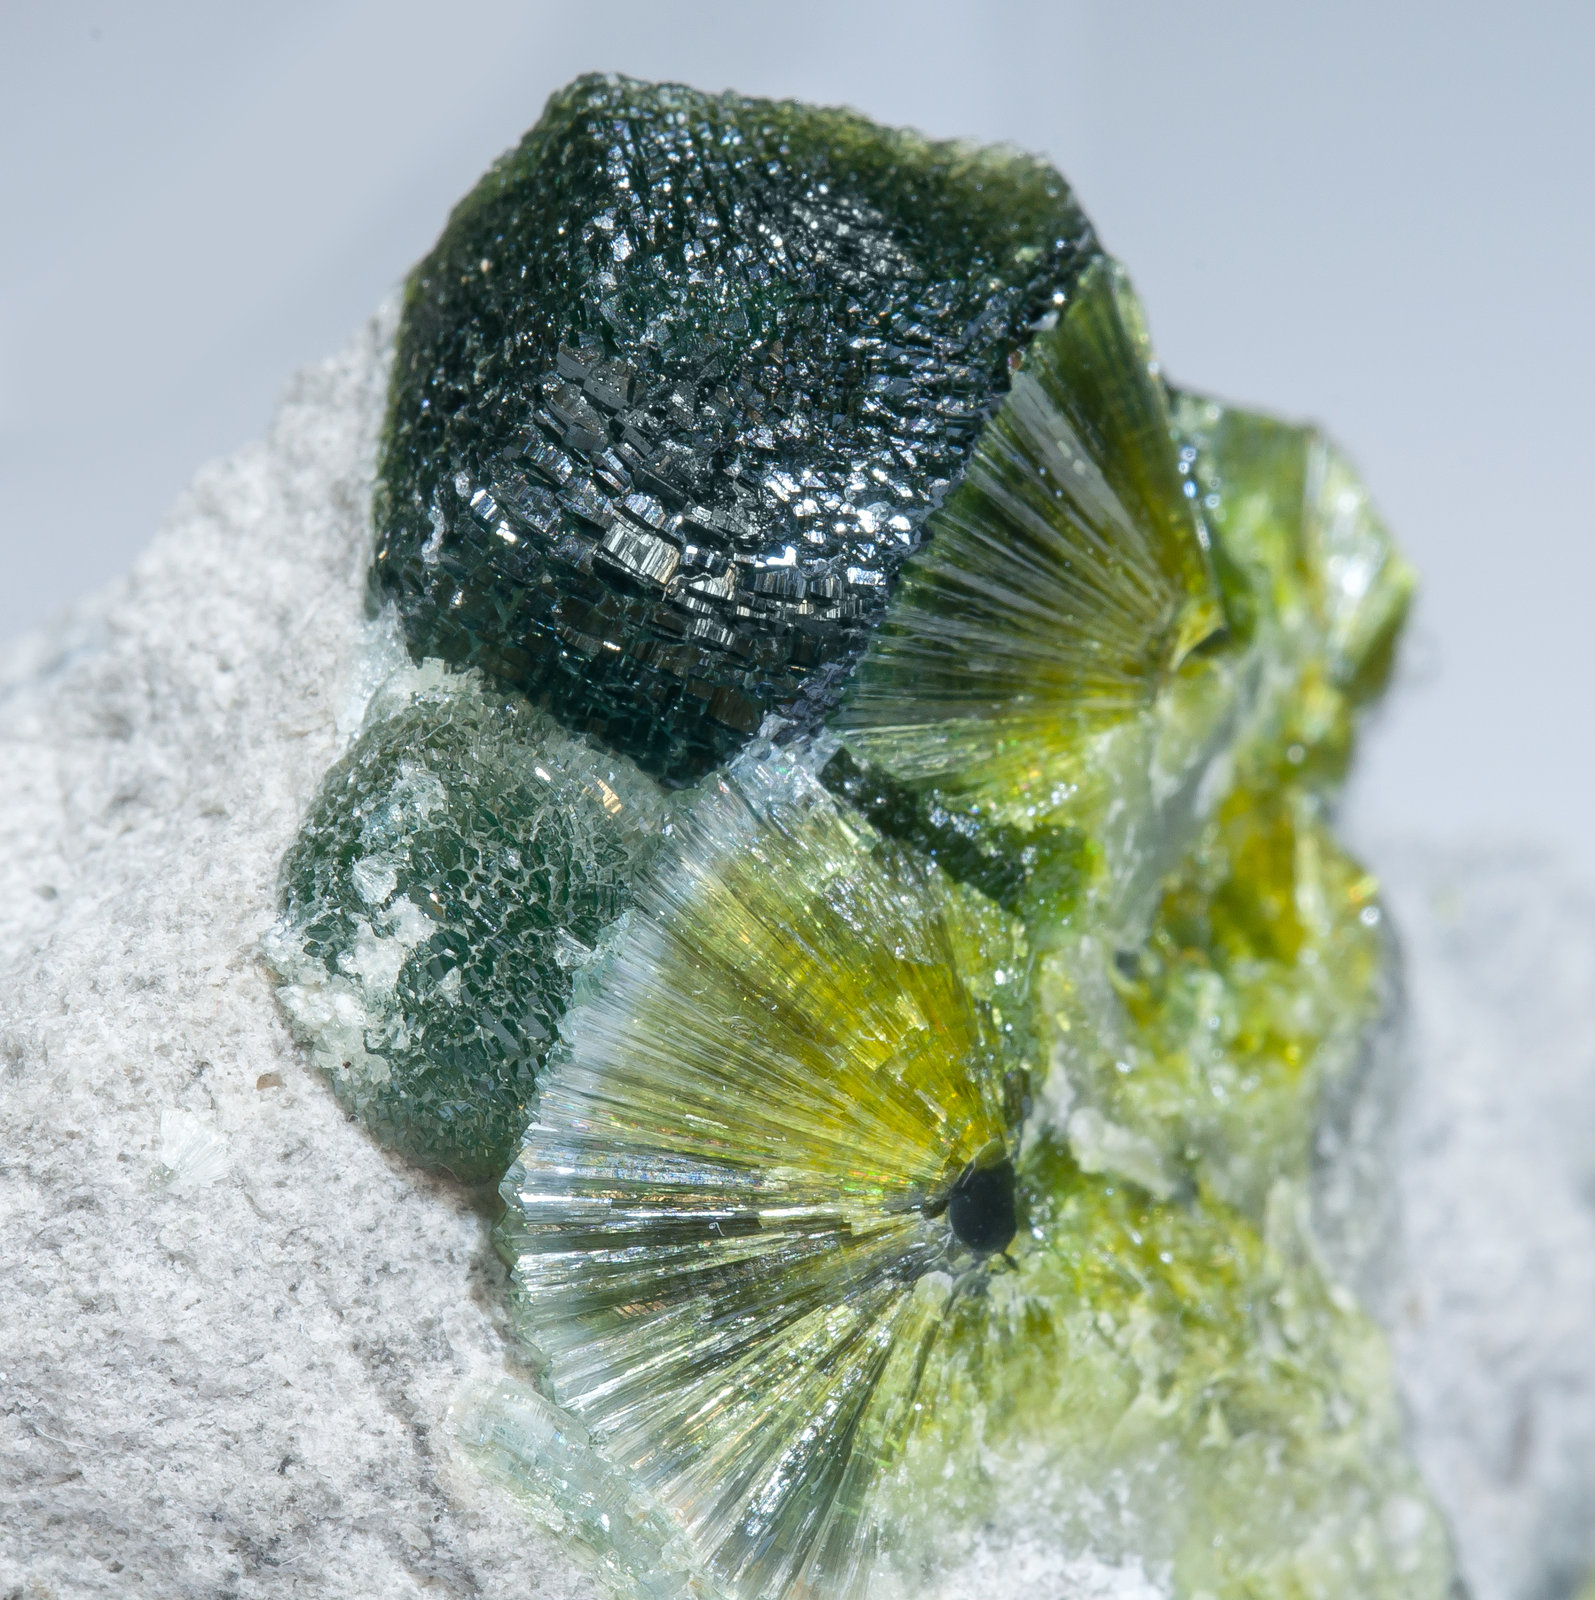 specimens/s_imagesAM2/Wavellite-HJ10AM2d.jpg